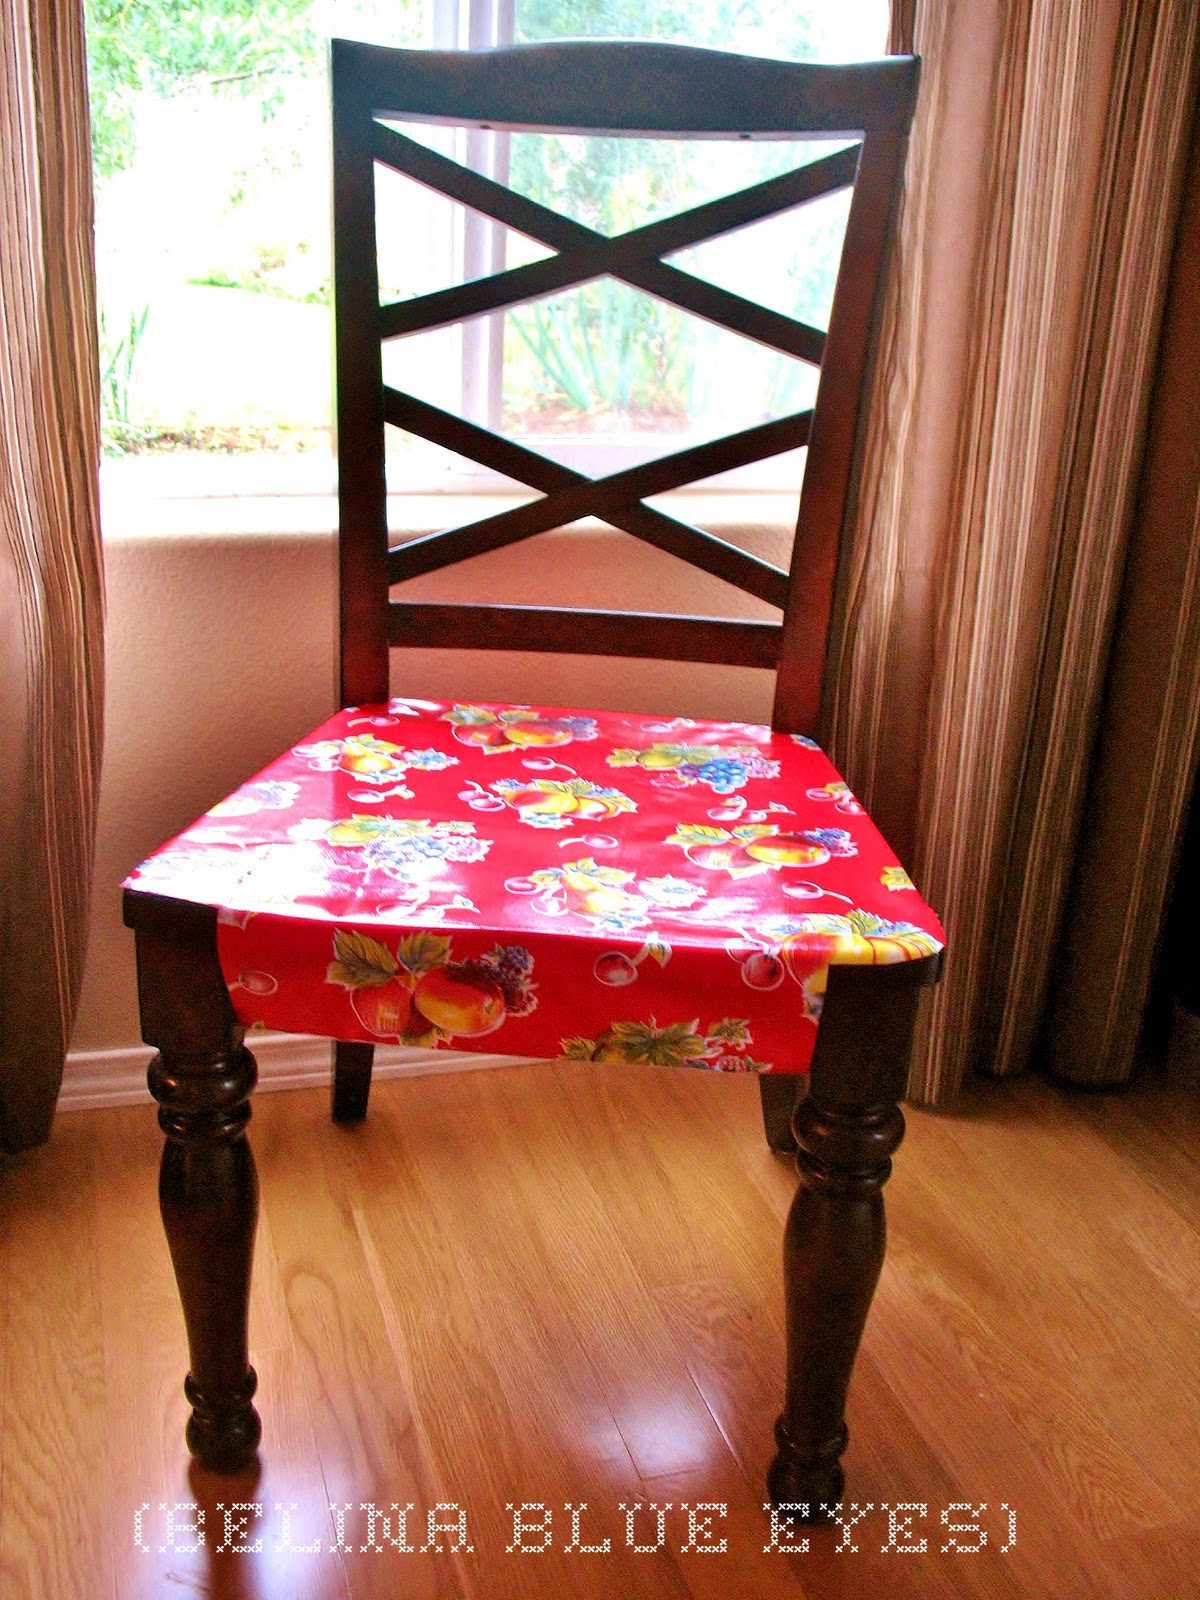 Outstanding Belina Blue Eyes No Sew Oilcloth Chair Protector Beatyapartments Chair Design Images Beatyapartmentscom